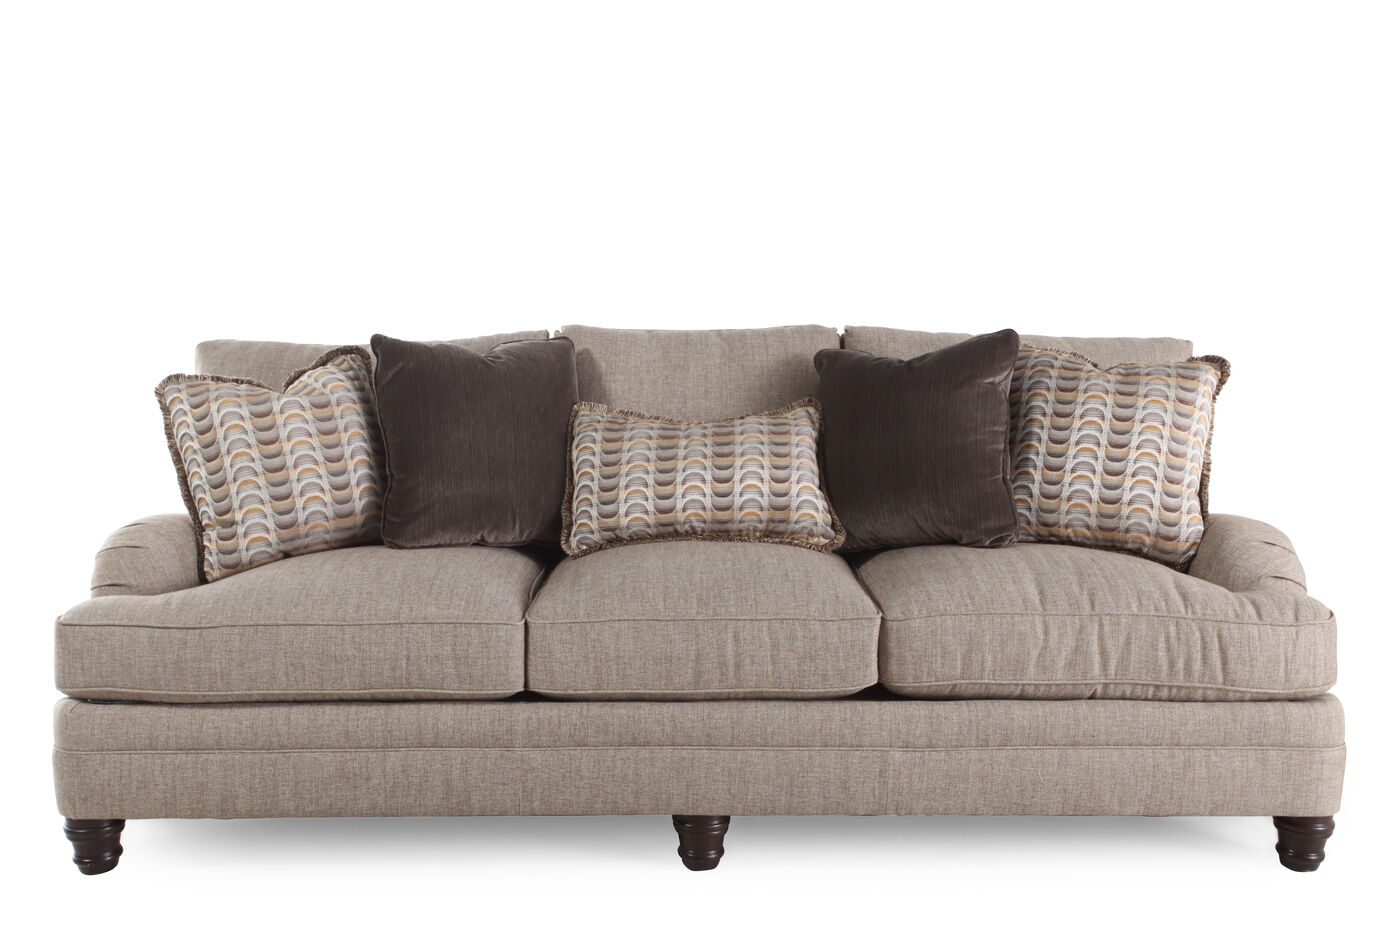 Bernhardt tarleton biege sofa mathis brothers furniture for Bernhardt furniture